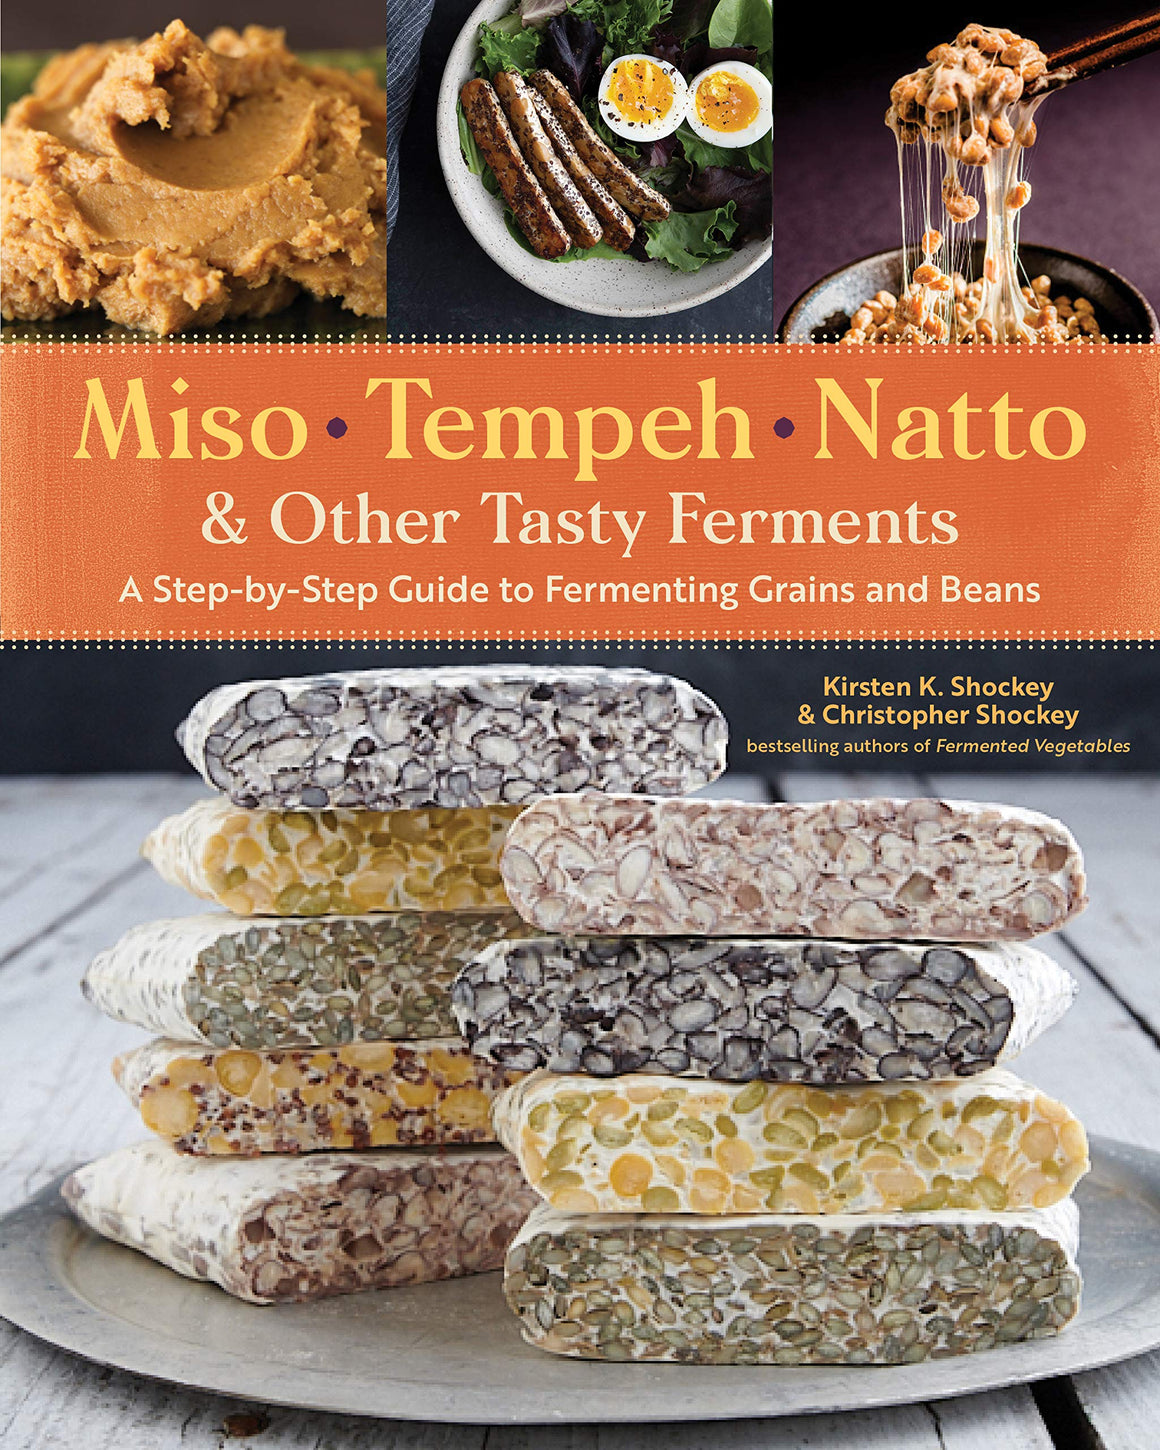 Kristin & Christopher Shockey. Miso, Tempeh, Natto & Other Tasty Ferments: A Step-by-Step Guide to Fermenting Grains and Beans. SIGNED!